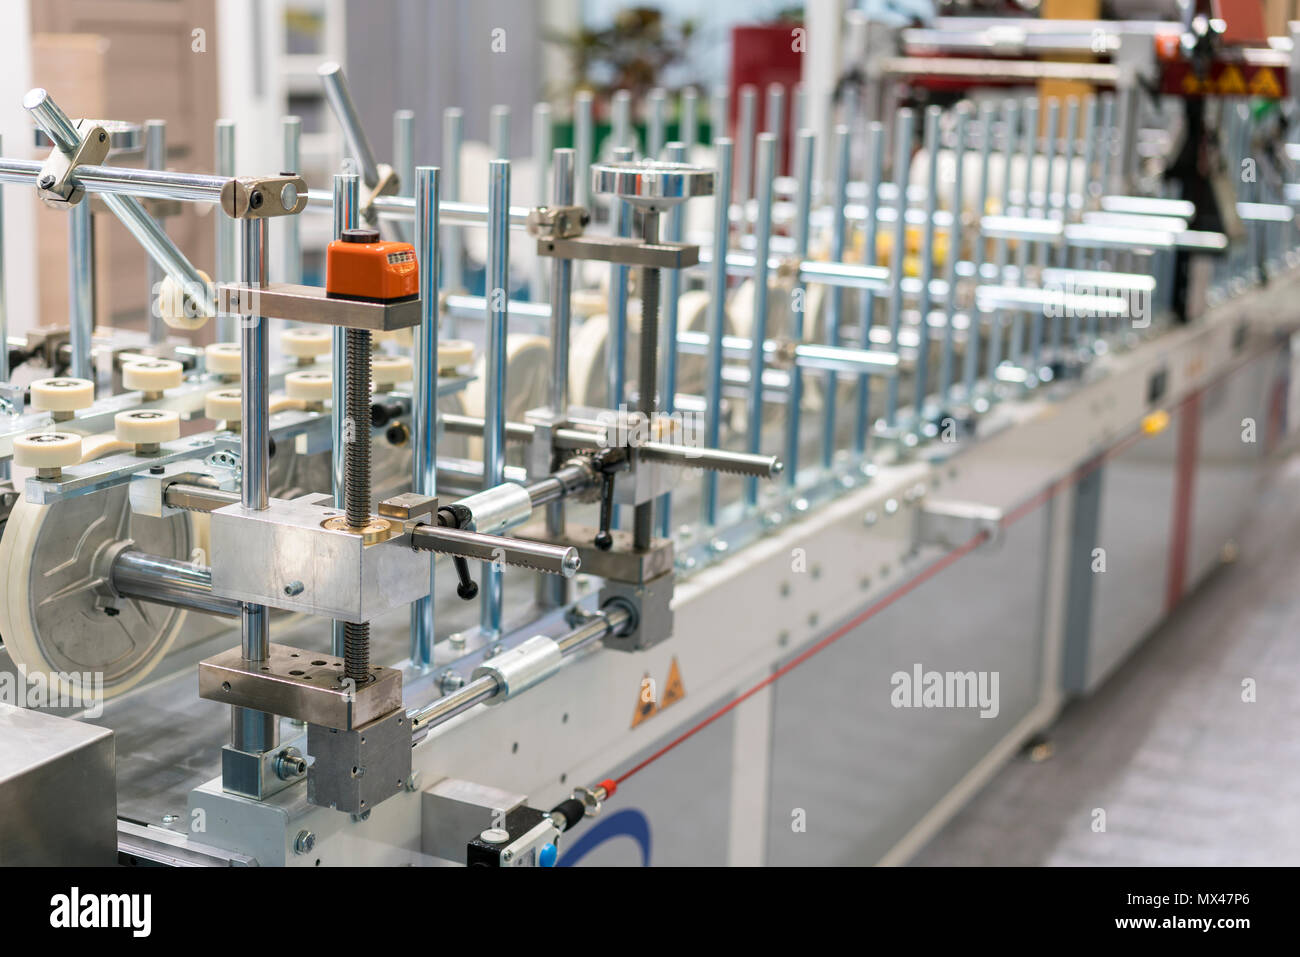 Textile processing machine. Machinery and equipment in a spinning production company. - Stock Image